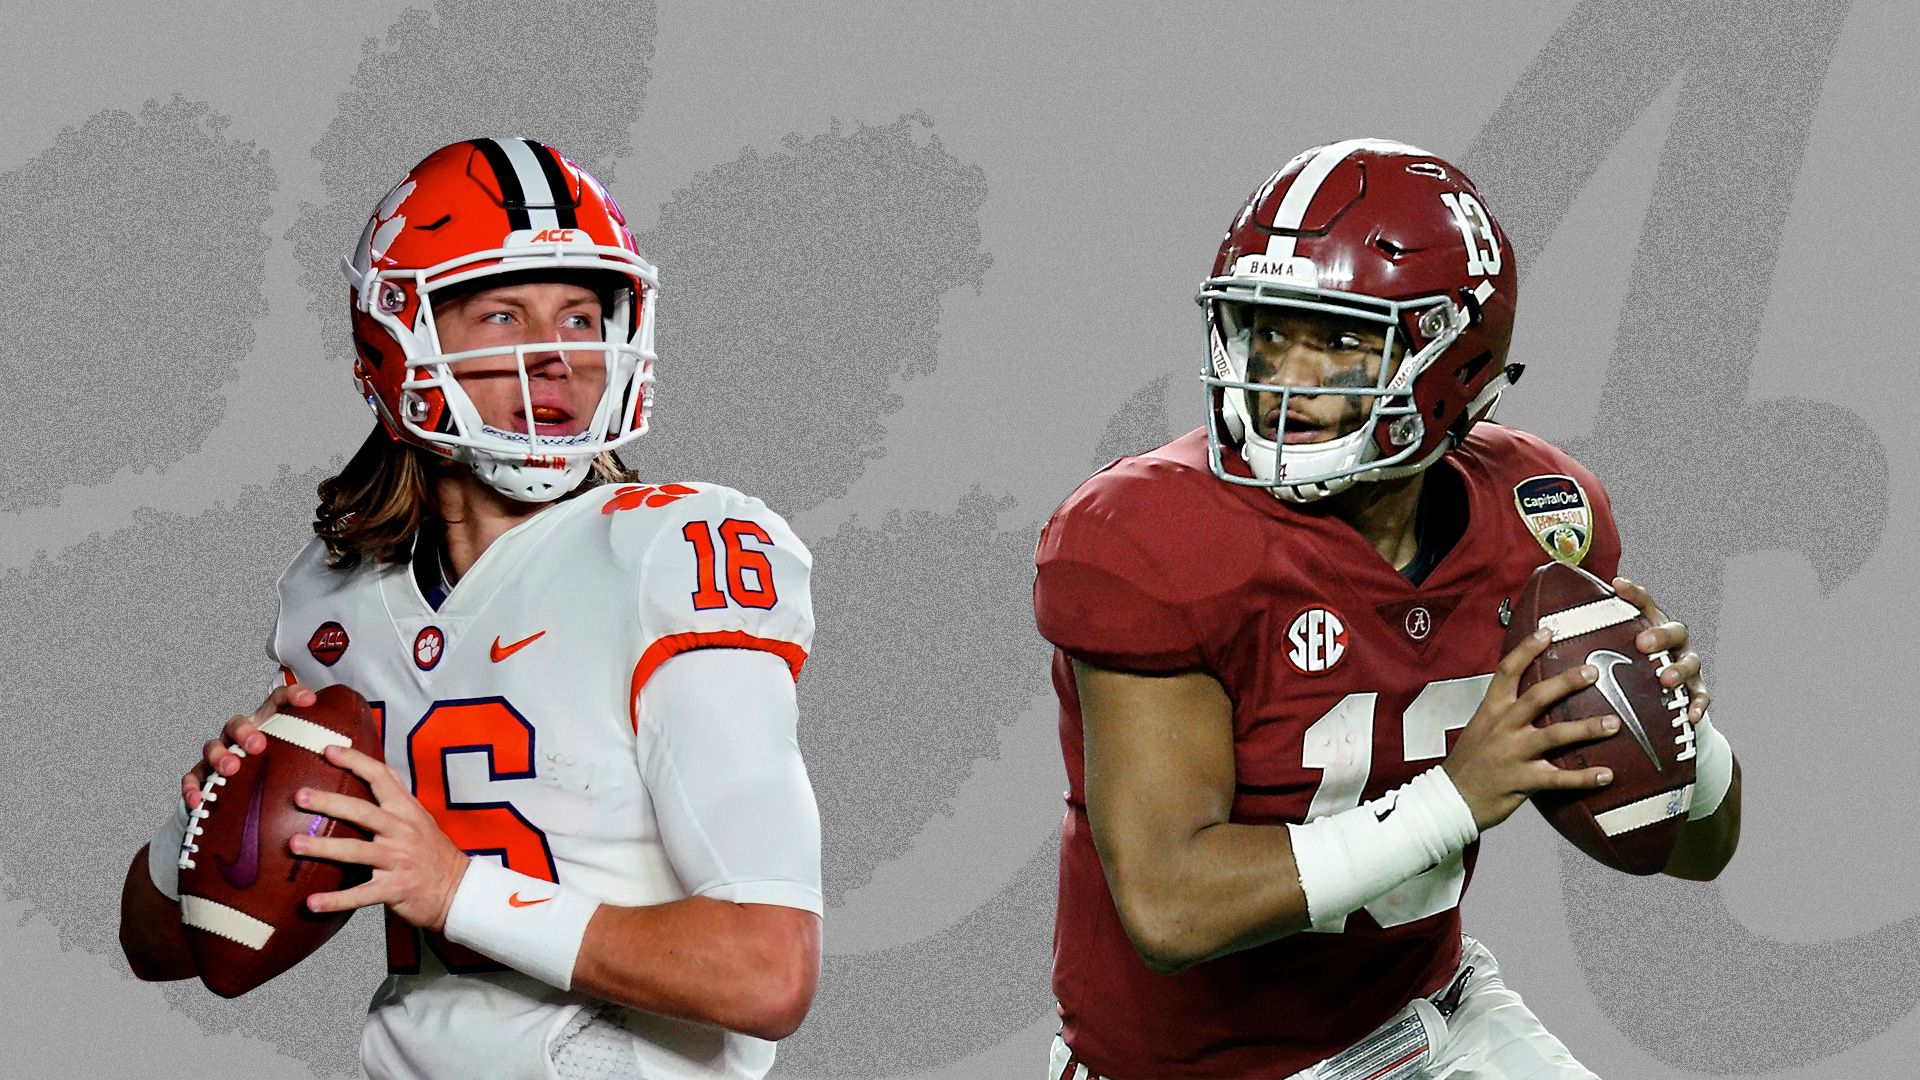 7089d5f0949f1 Clemson vs. Bama takes center stage at media days - Axios